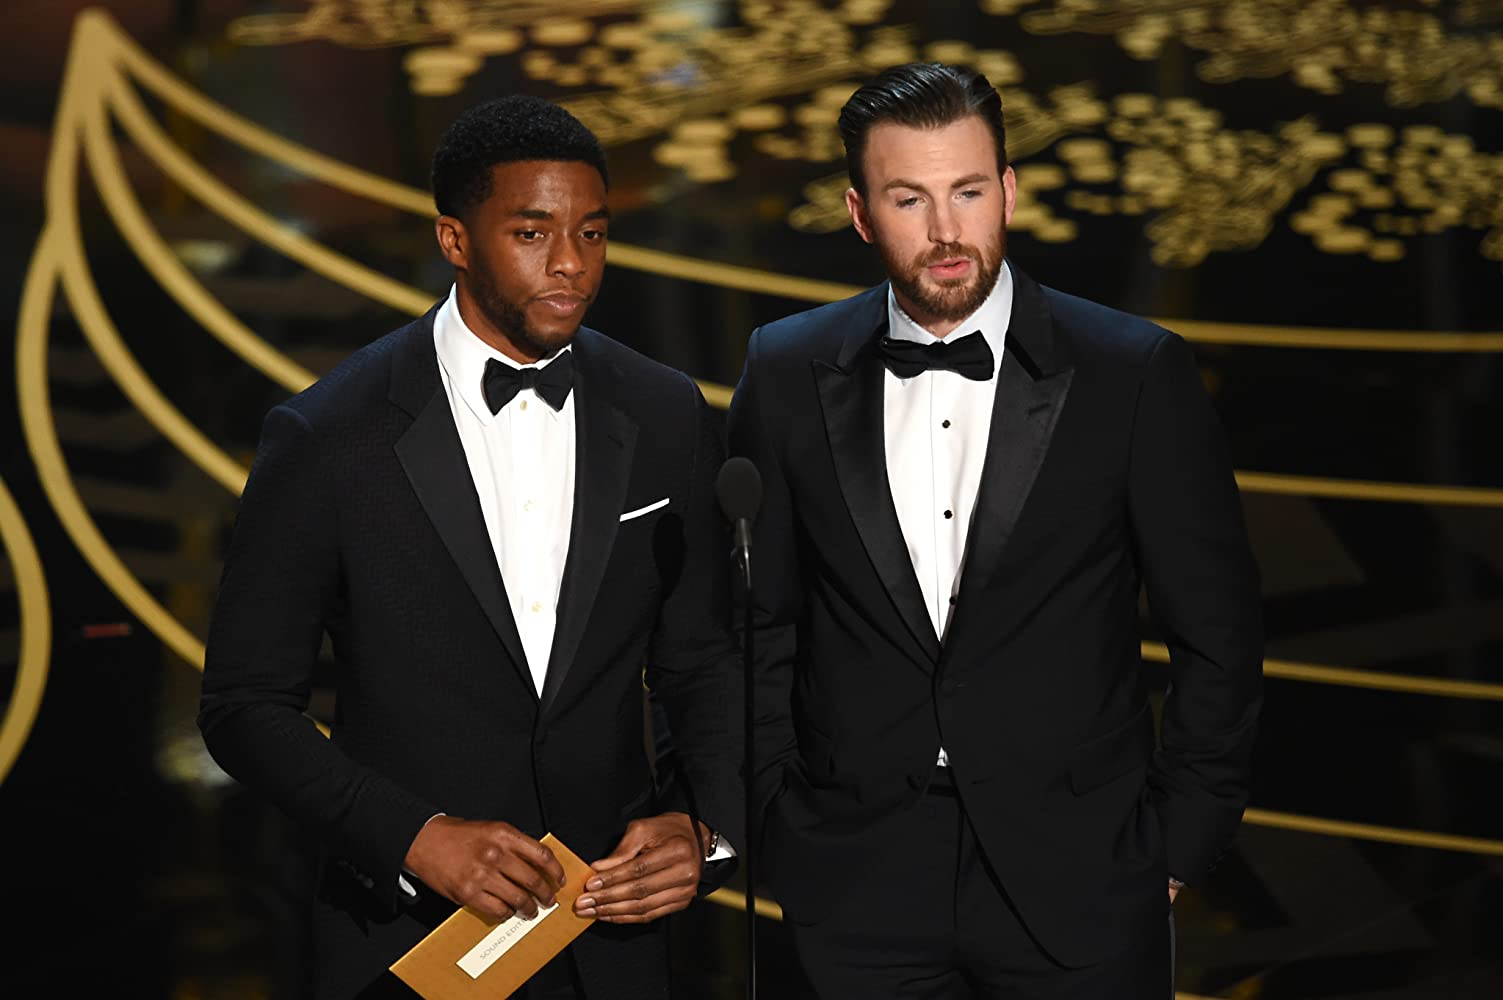 Chris Evans and Chadwick Boseman at an event for The Oscars (2016)